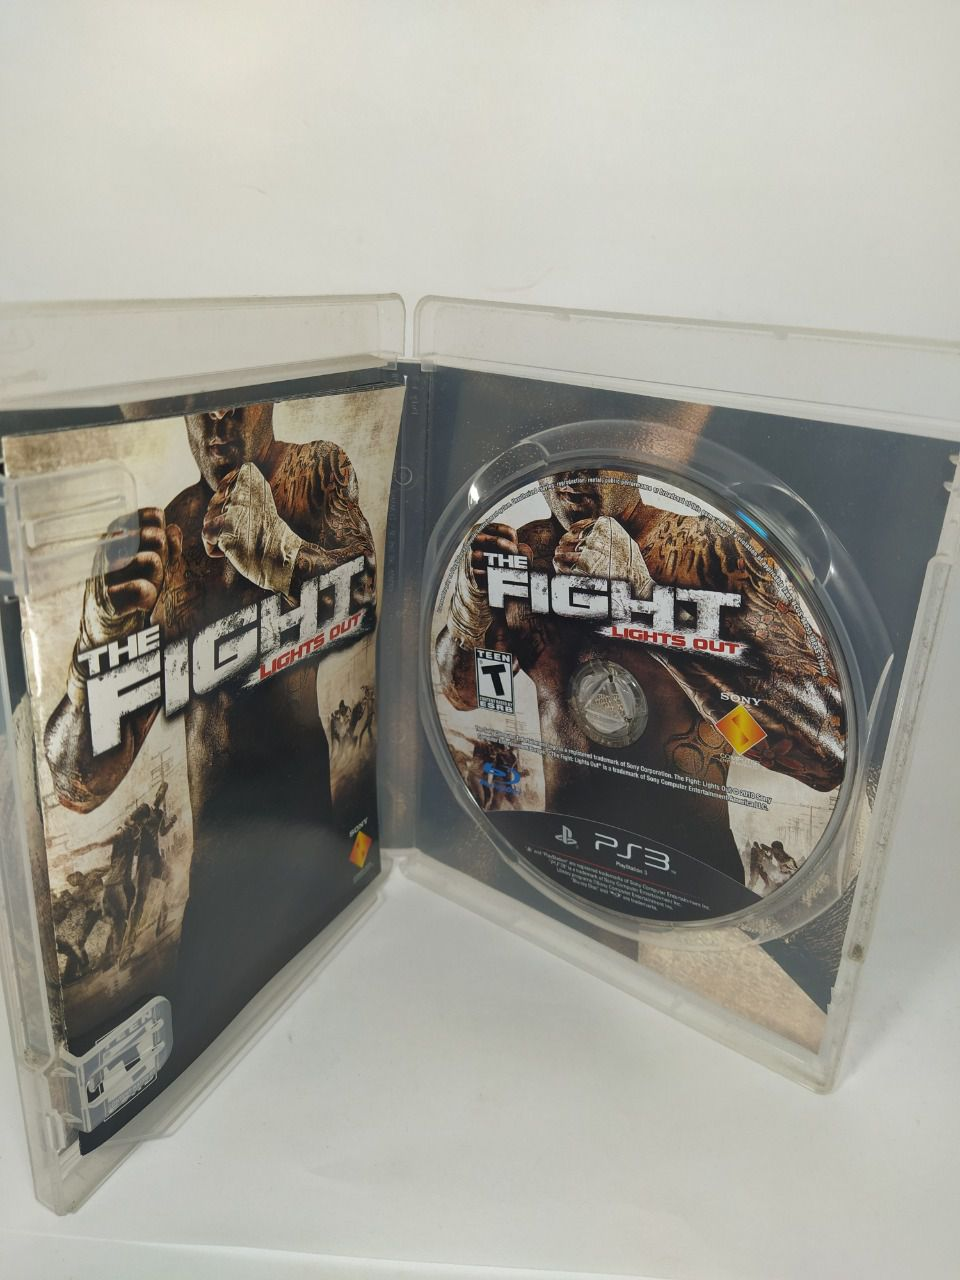 Jogo ps3 The Fight: Lights Out Mídia Física Usado